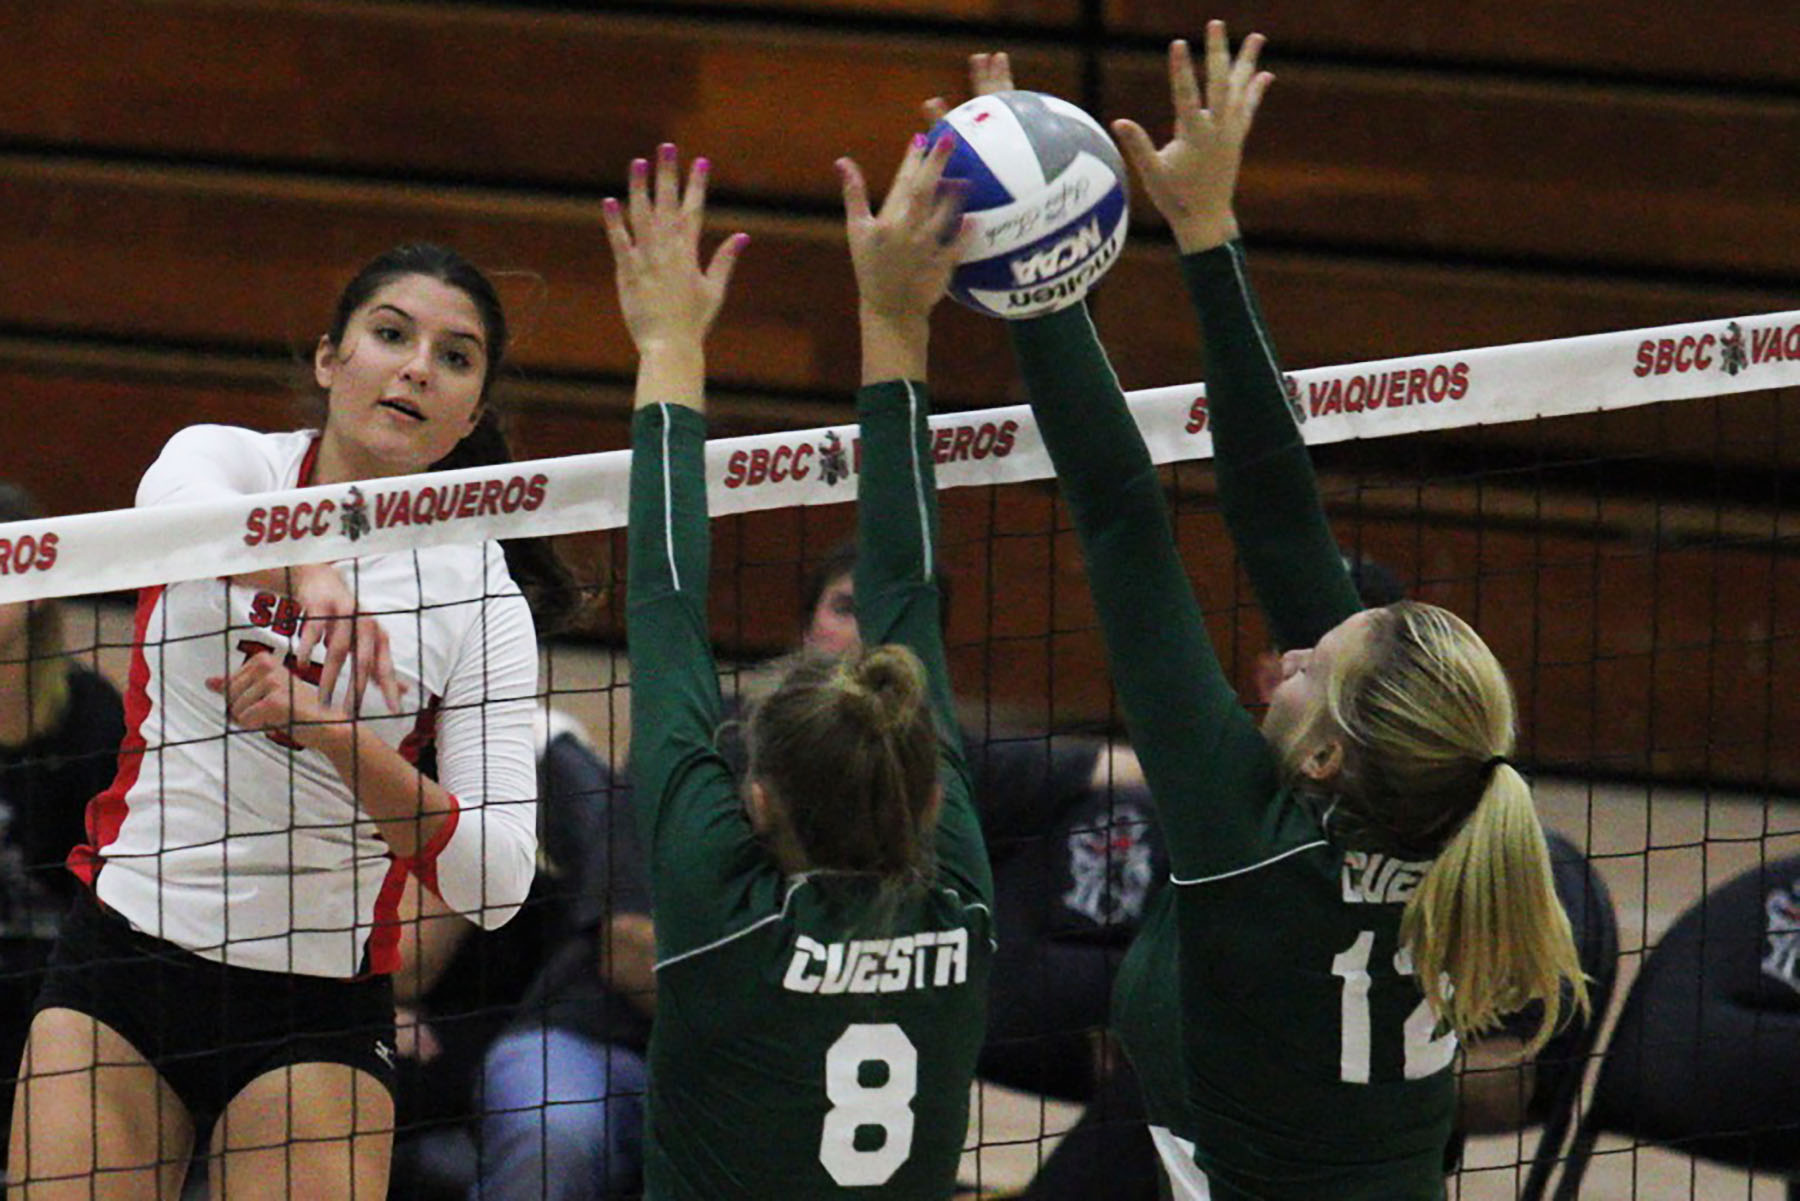 Vaquero Outside Hitter Carolyn Andrulis (No. 15) spikes the ball against Cougars Kelly Cole (No. 8) and Morgan Lawson (No. 12) on Wednesday, Nov. 2, in the Sports Pavilion. City College conquered Cuesta College 3-0.